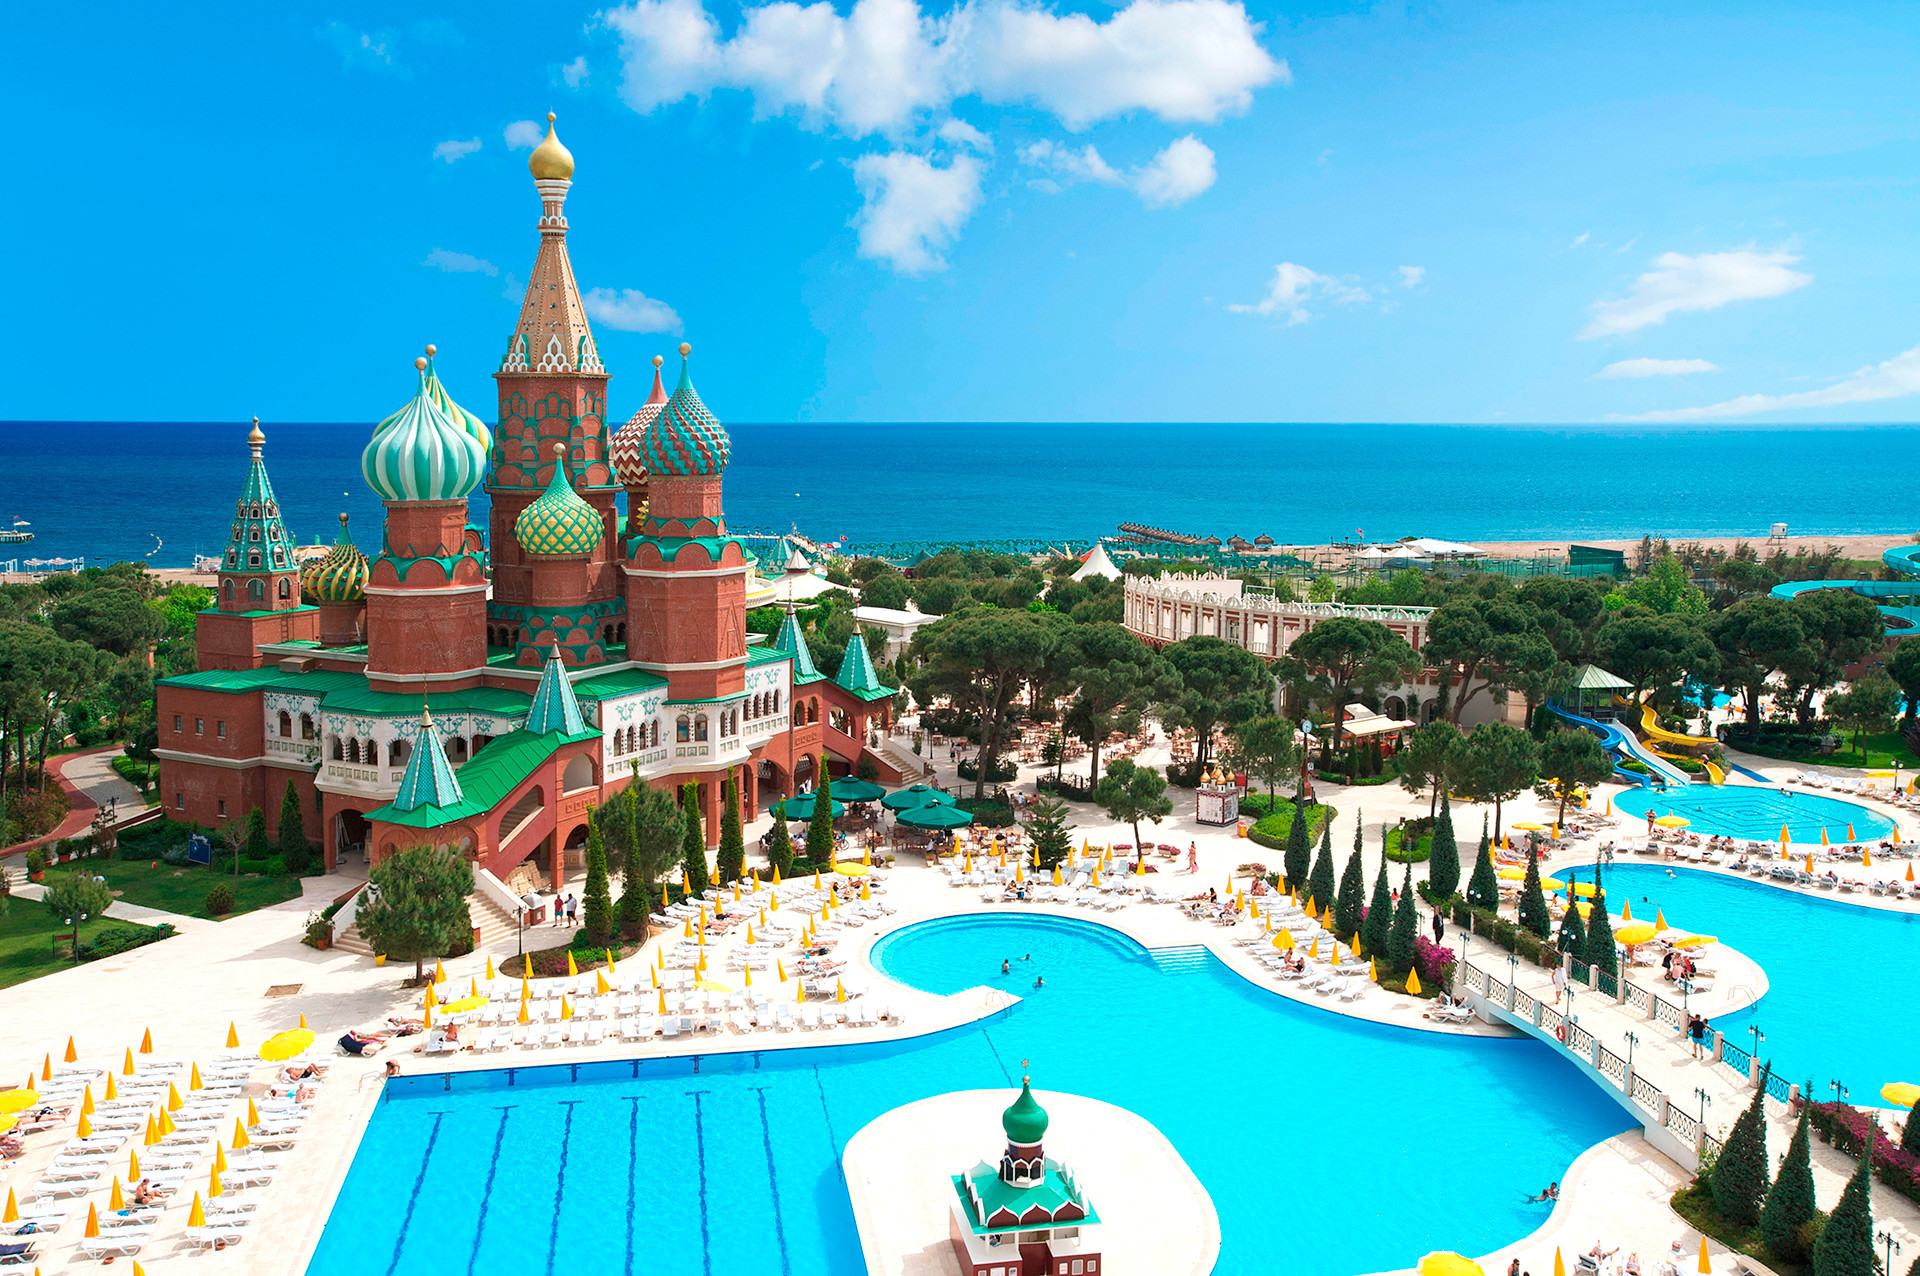 The Kremlin Palace Hotel in Antalya, Turkey